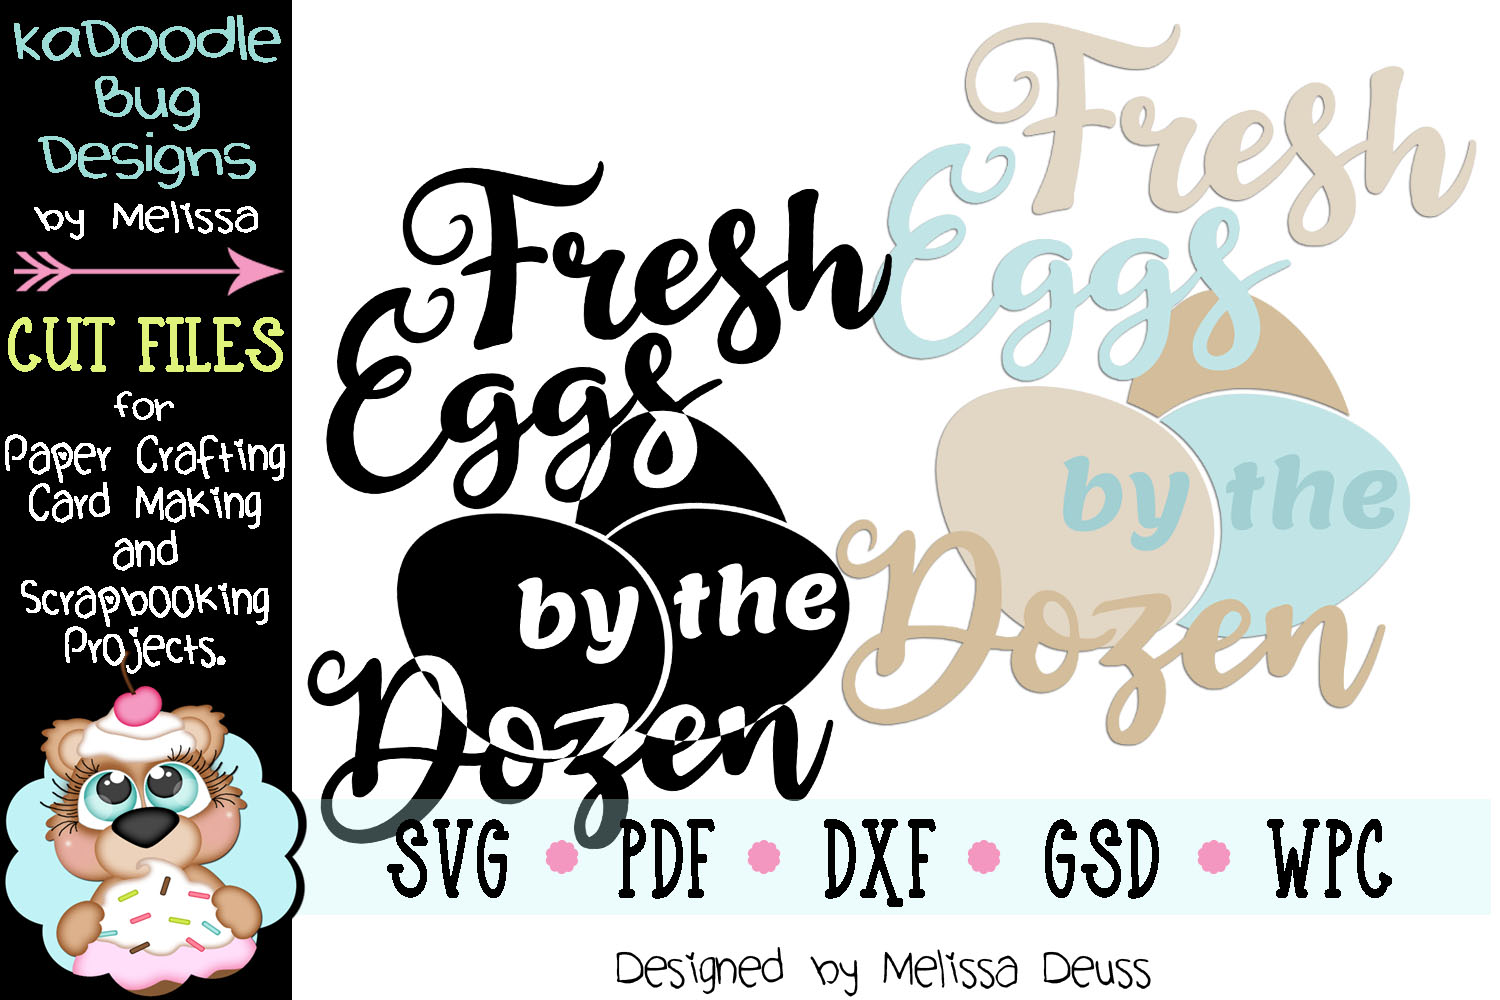 Fresh Eggs by the Dozen Vertical Cut File - SVG PDF DXF GSD example image 2